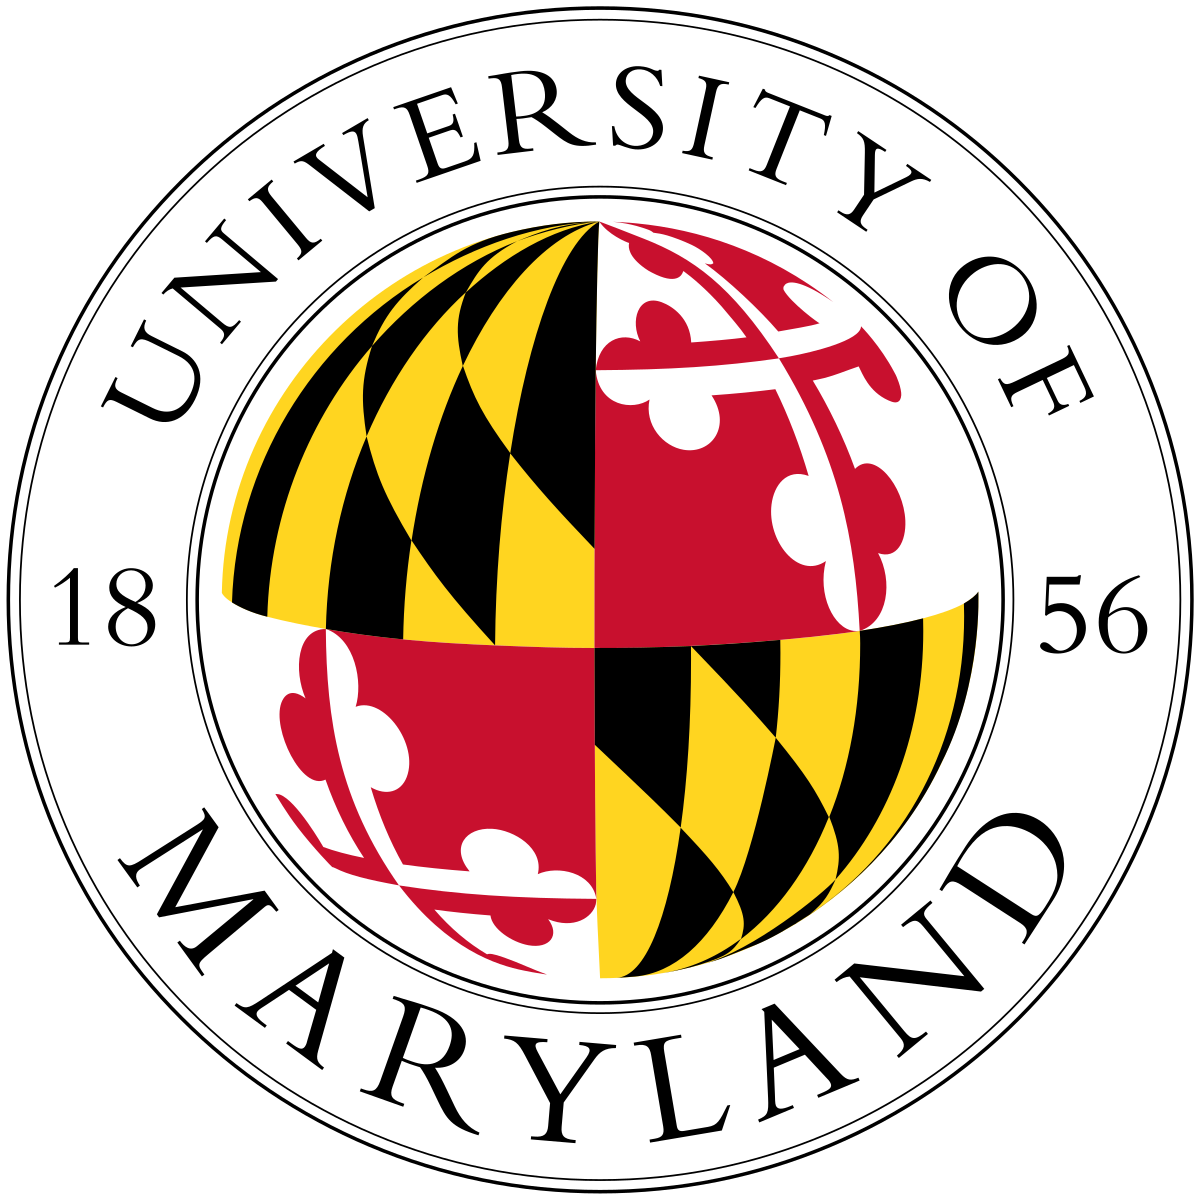 University of Maryland